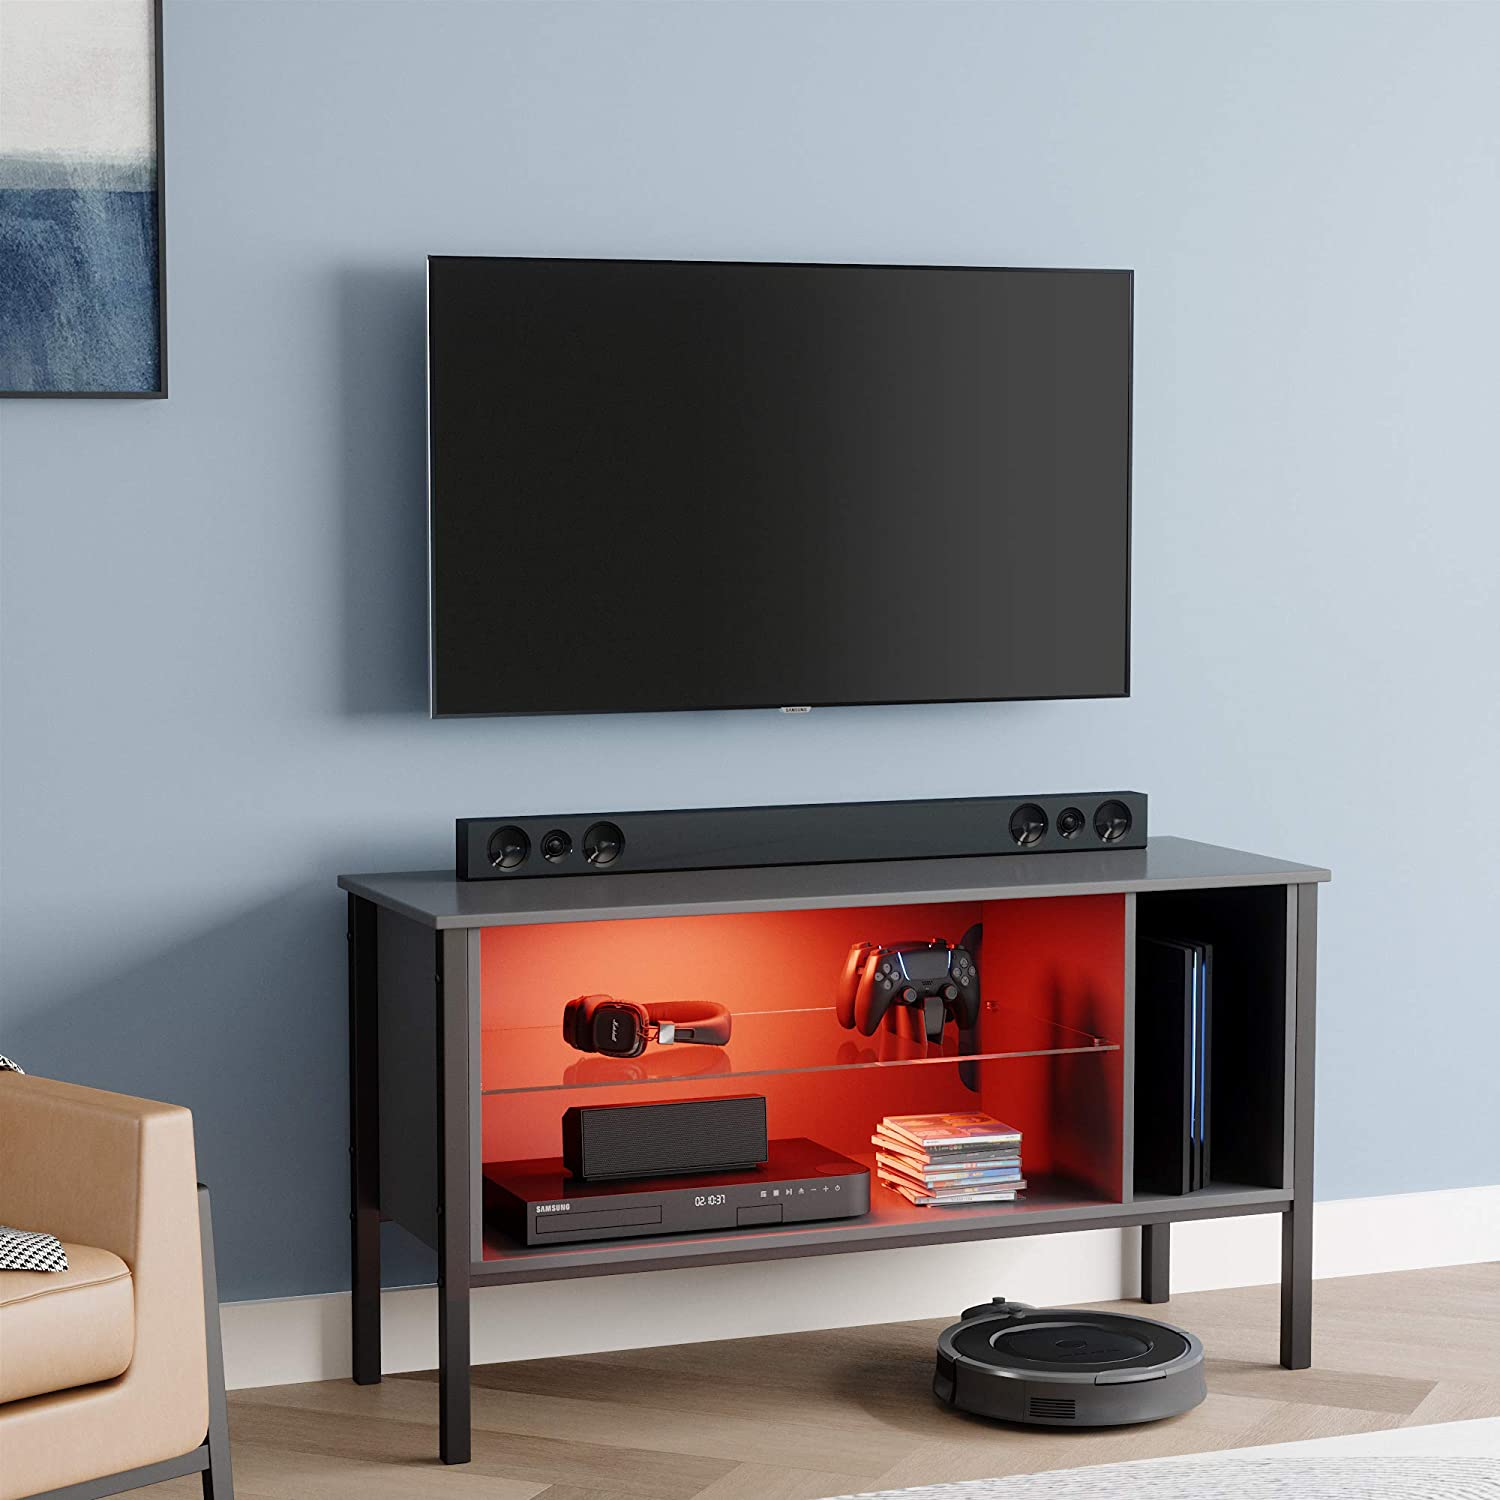 """Bestier 44 inch TV Stand for 50"""" tv,20 Color LED Entertainment Center Modern TV Console Television Media Stands ,TV Cabinet with Storage Drawers and Shelves for Living Room Bedroom Furniture"""